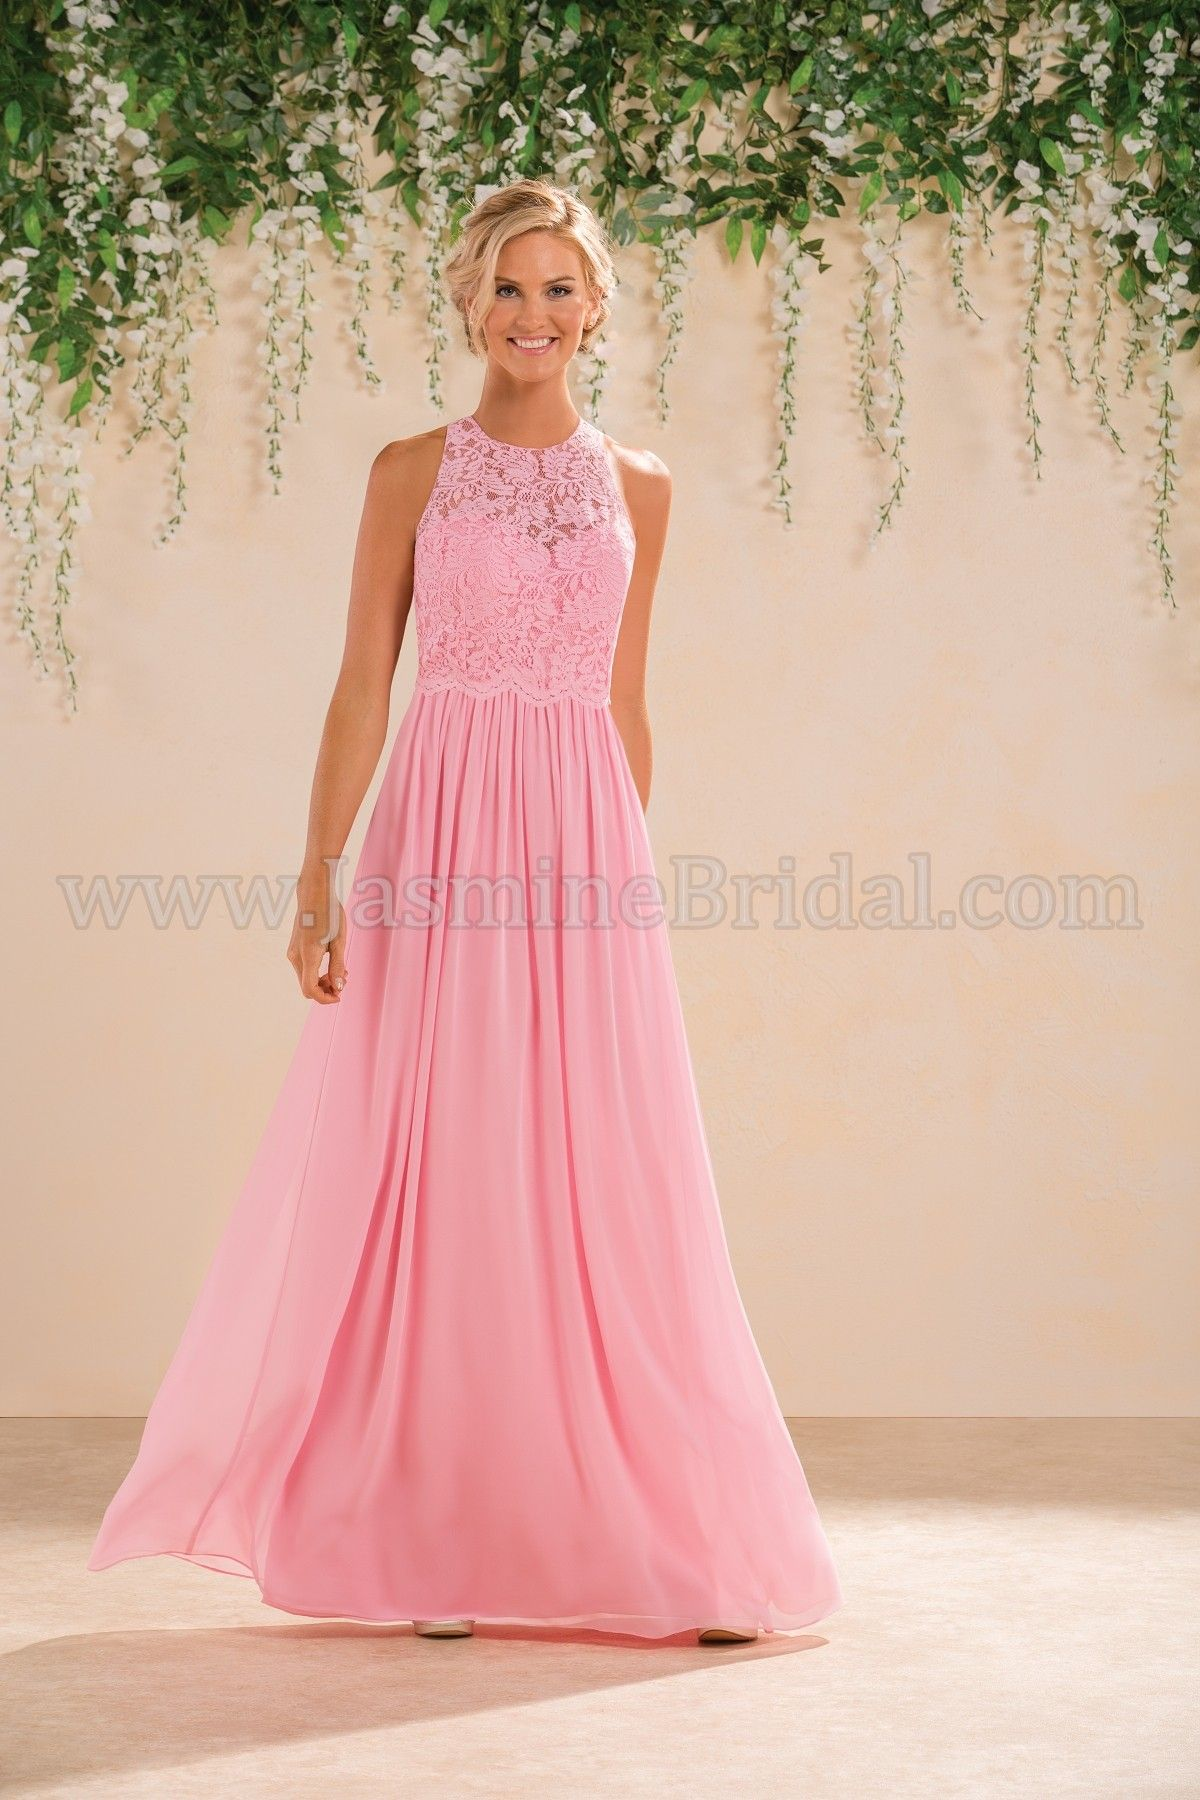 Jasmine bridal bridesmaid dress b2 style b183017 in cosmopolitan jasmine bridal bridesmaid dress b2 style b183017 in cosmopolitan pink ombrellifo Images